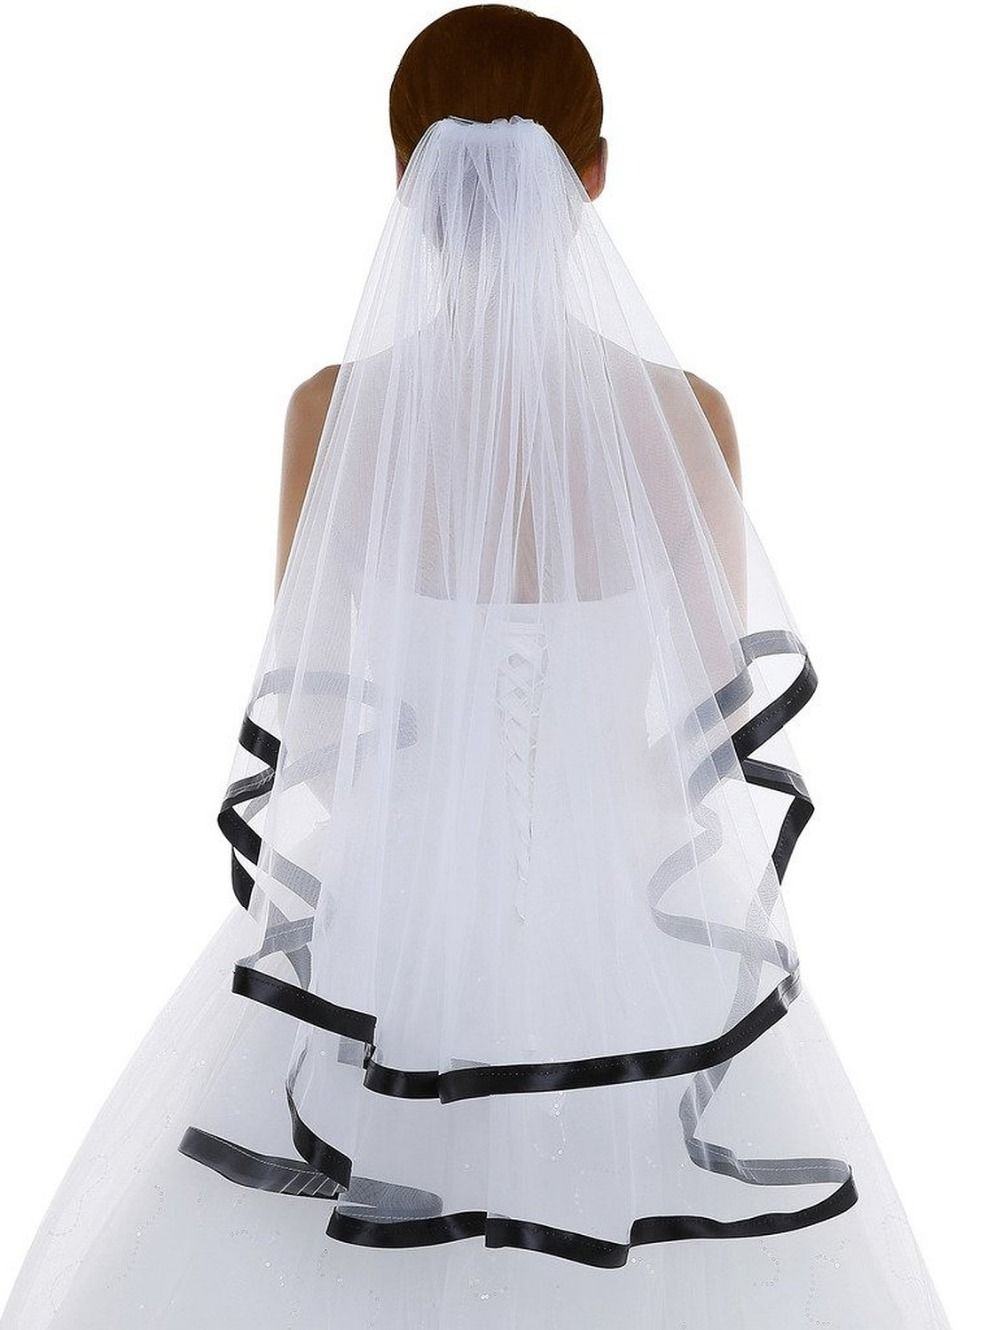 White Short Wedding Veil With Black Ribbon Edge Ivory Veils Comb 2 Layer Bridal